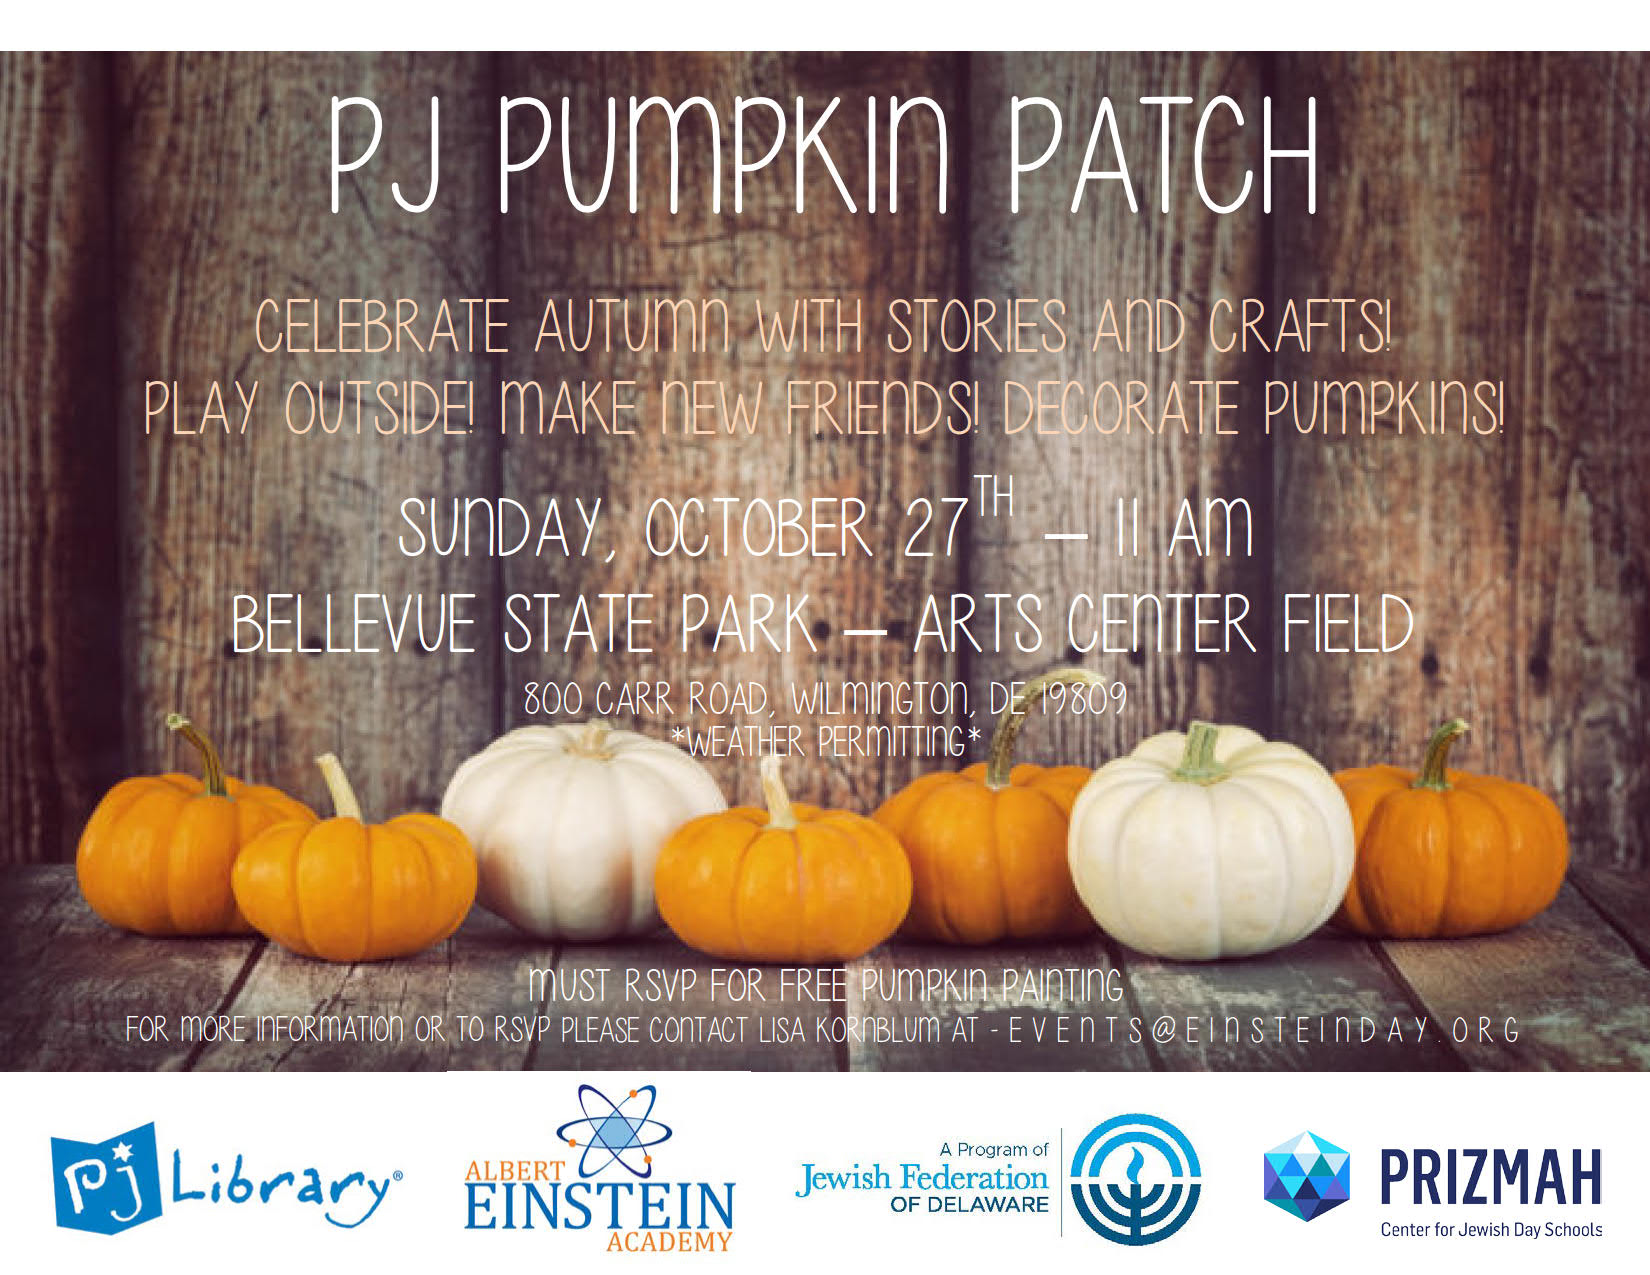 PJ Pumpkin Patch